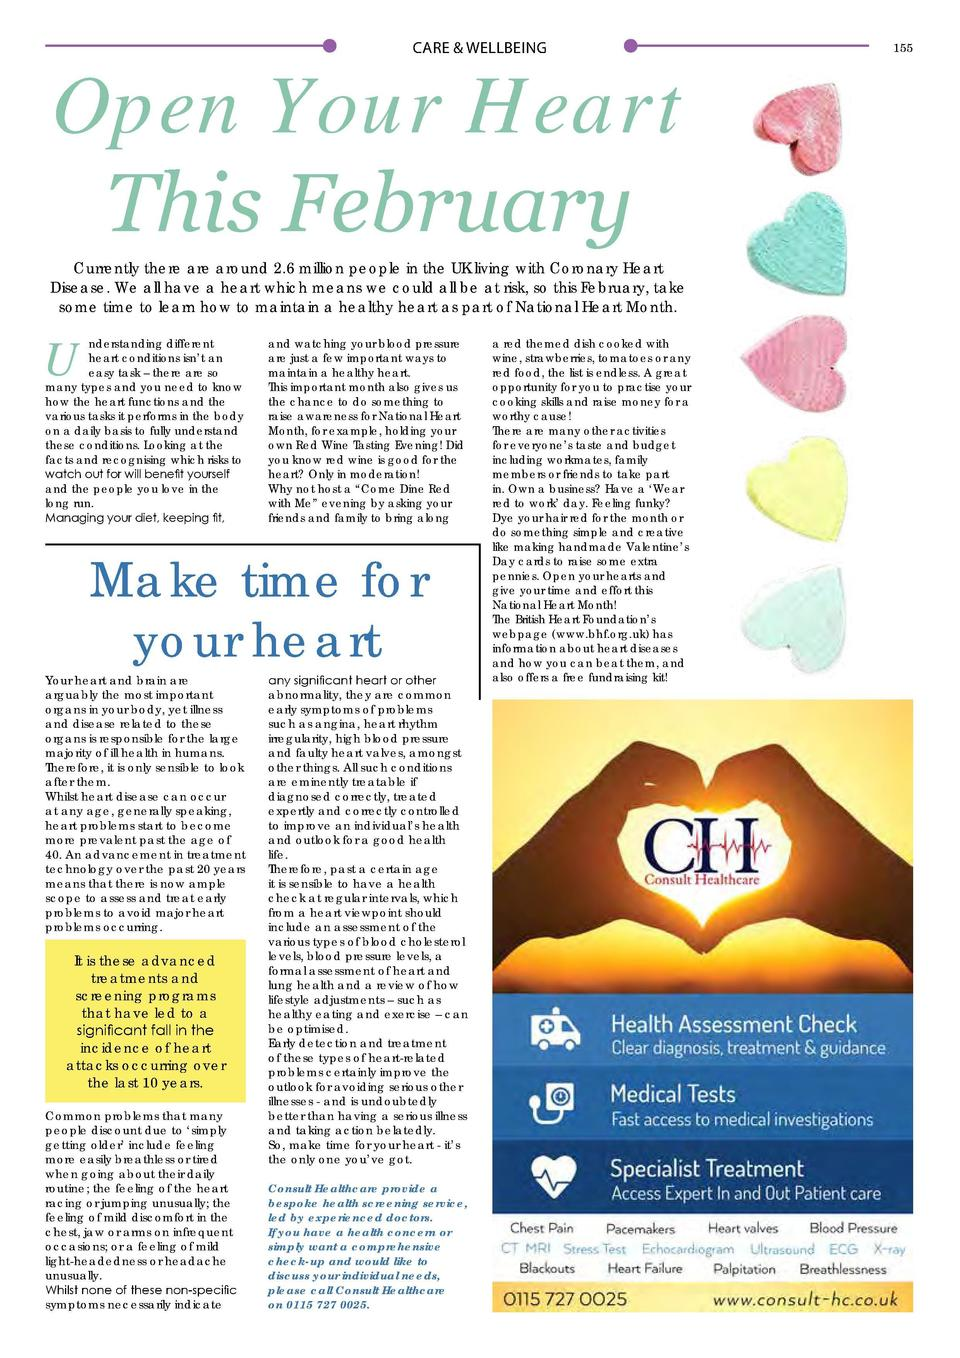 CARE   WELLBEING  Open Your Heart This February Currently there are around 2.6 million people in the UK living with Corona...